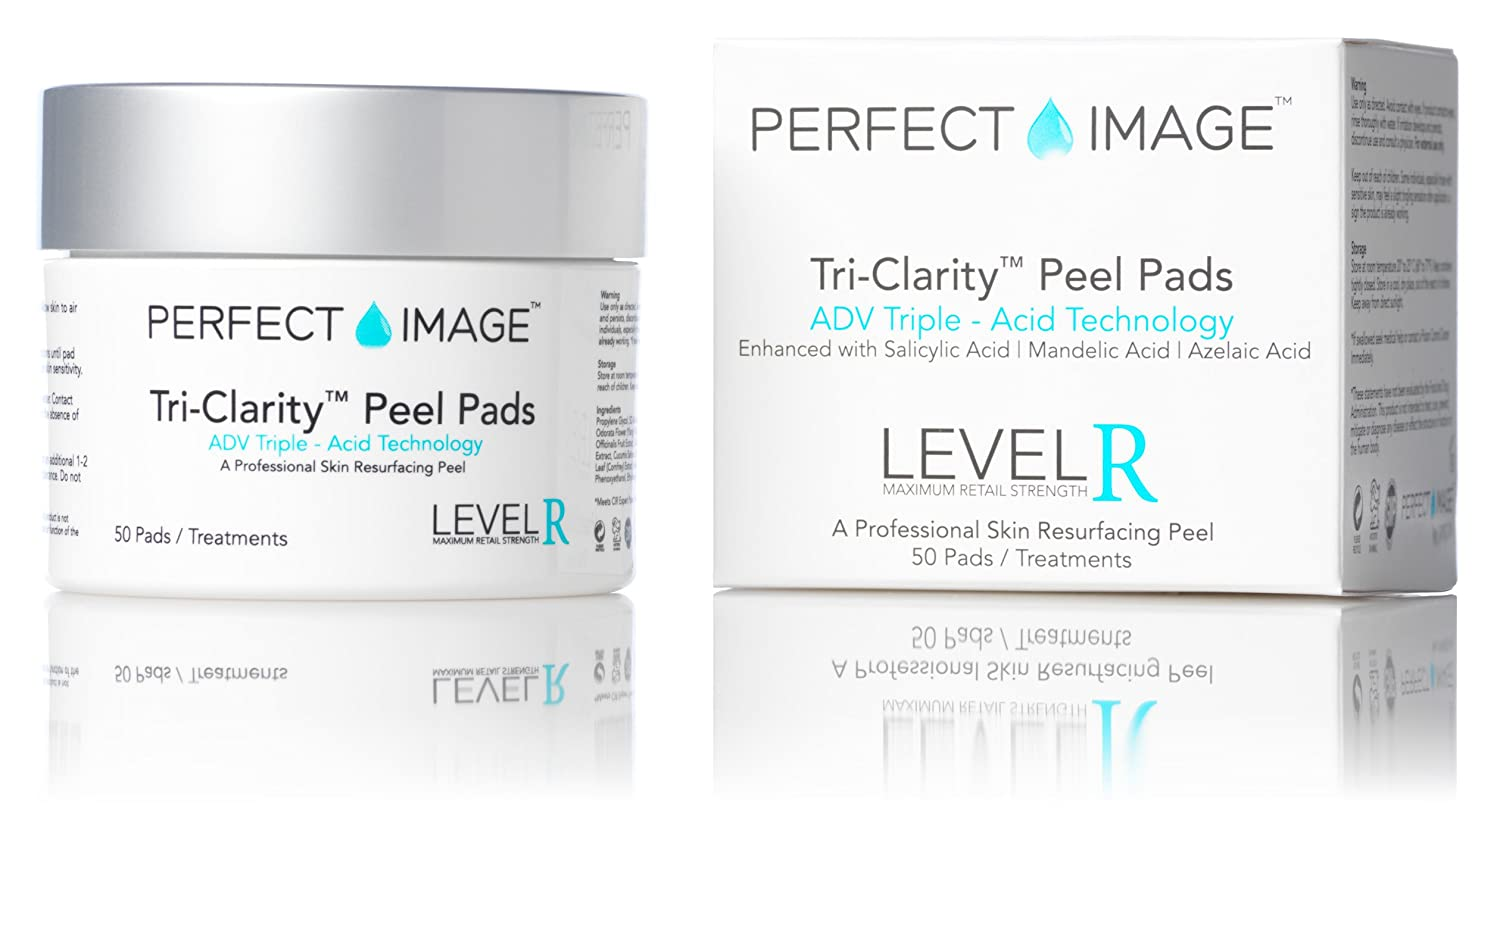 50%OFF TRI-Clarity Peel Pads 10% (Daily-Use) - Enhanced with